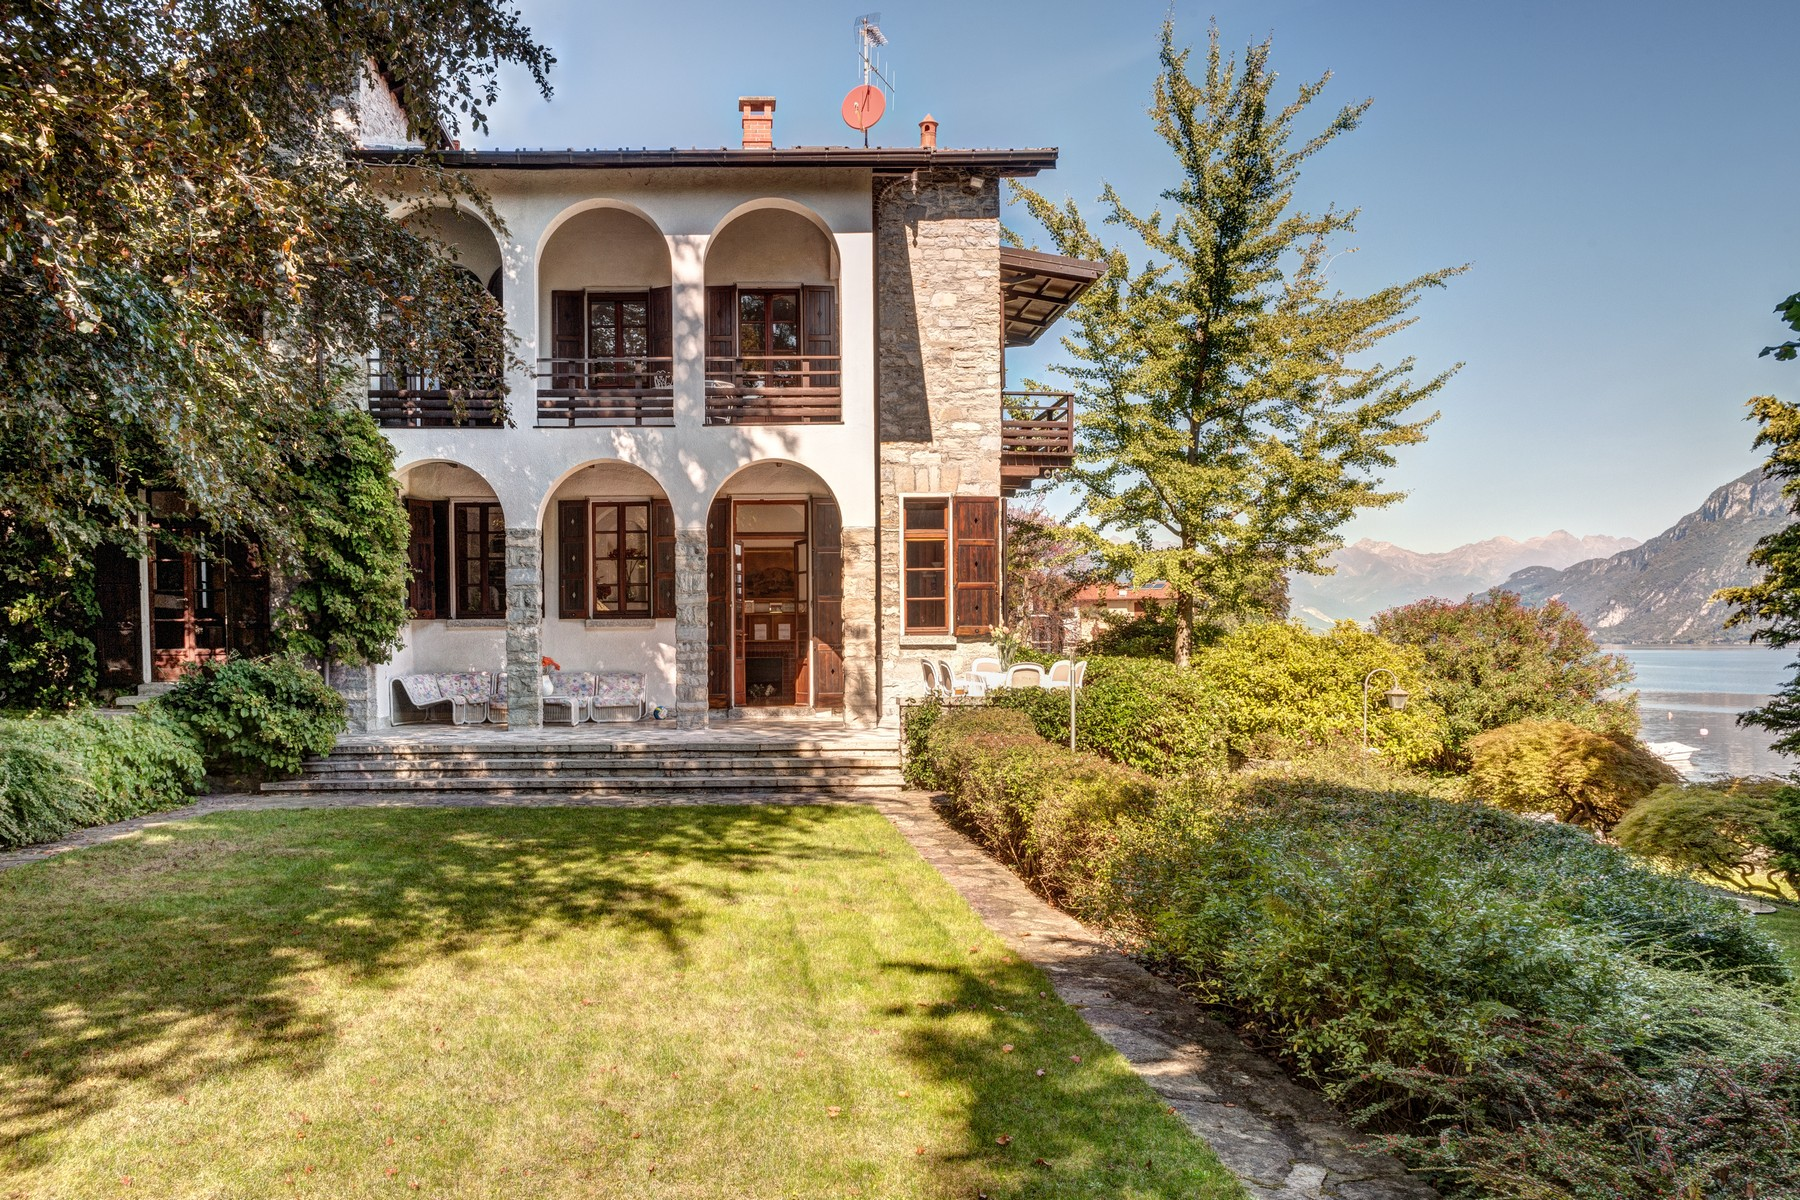 Additional photo for property listing at Magnificent property pieds dans l'eau Via Cadorna Oliveto Lario, Lecco 23865 Italien